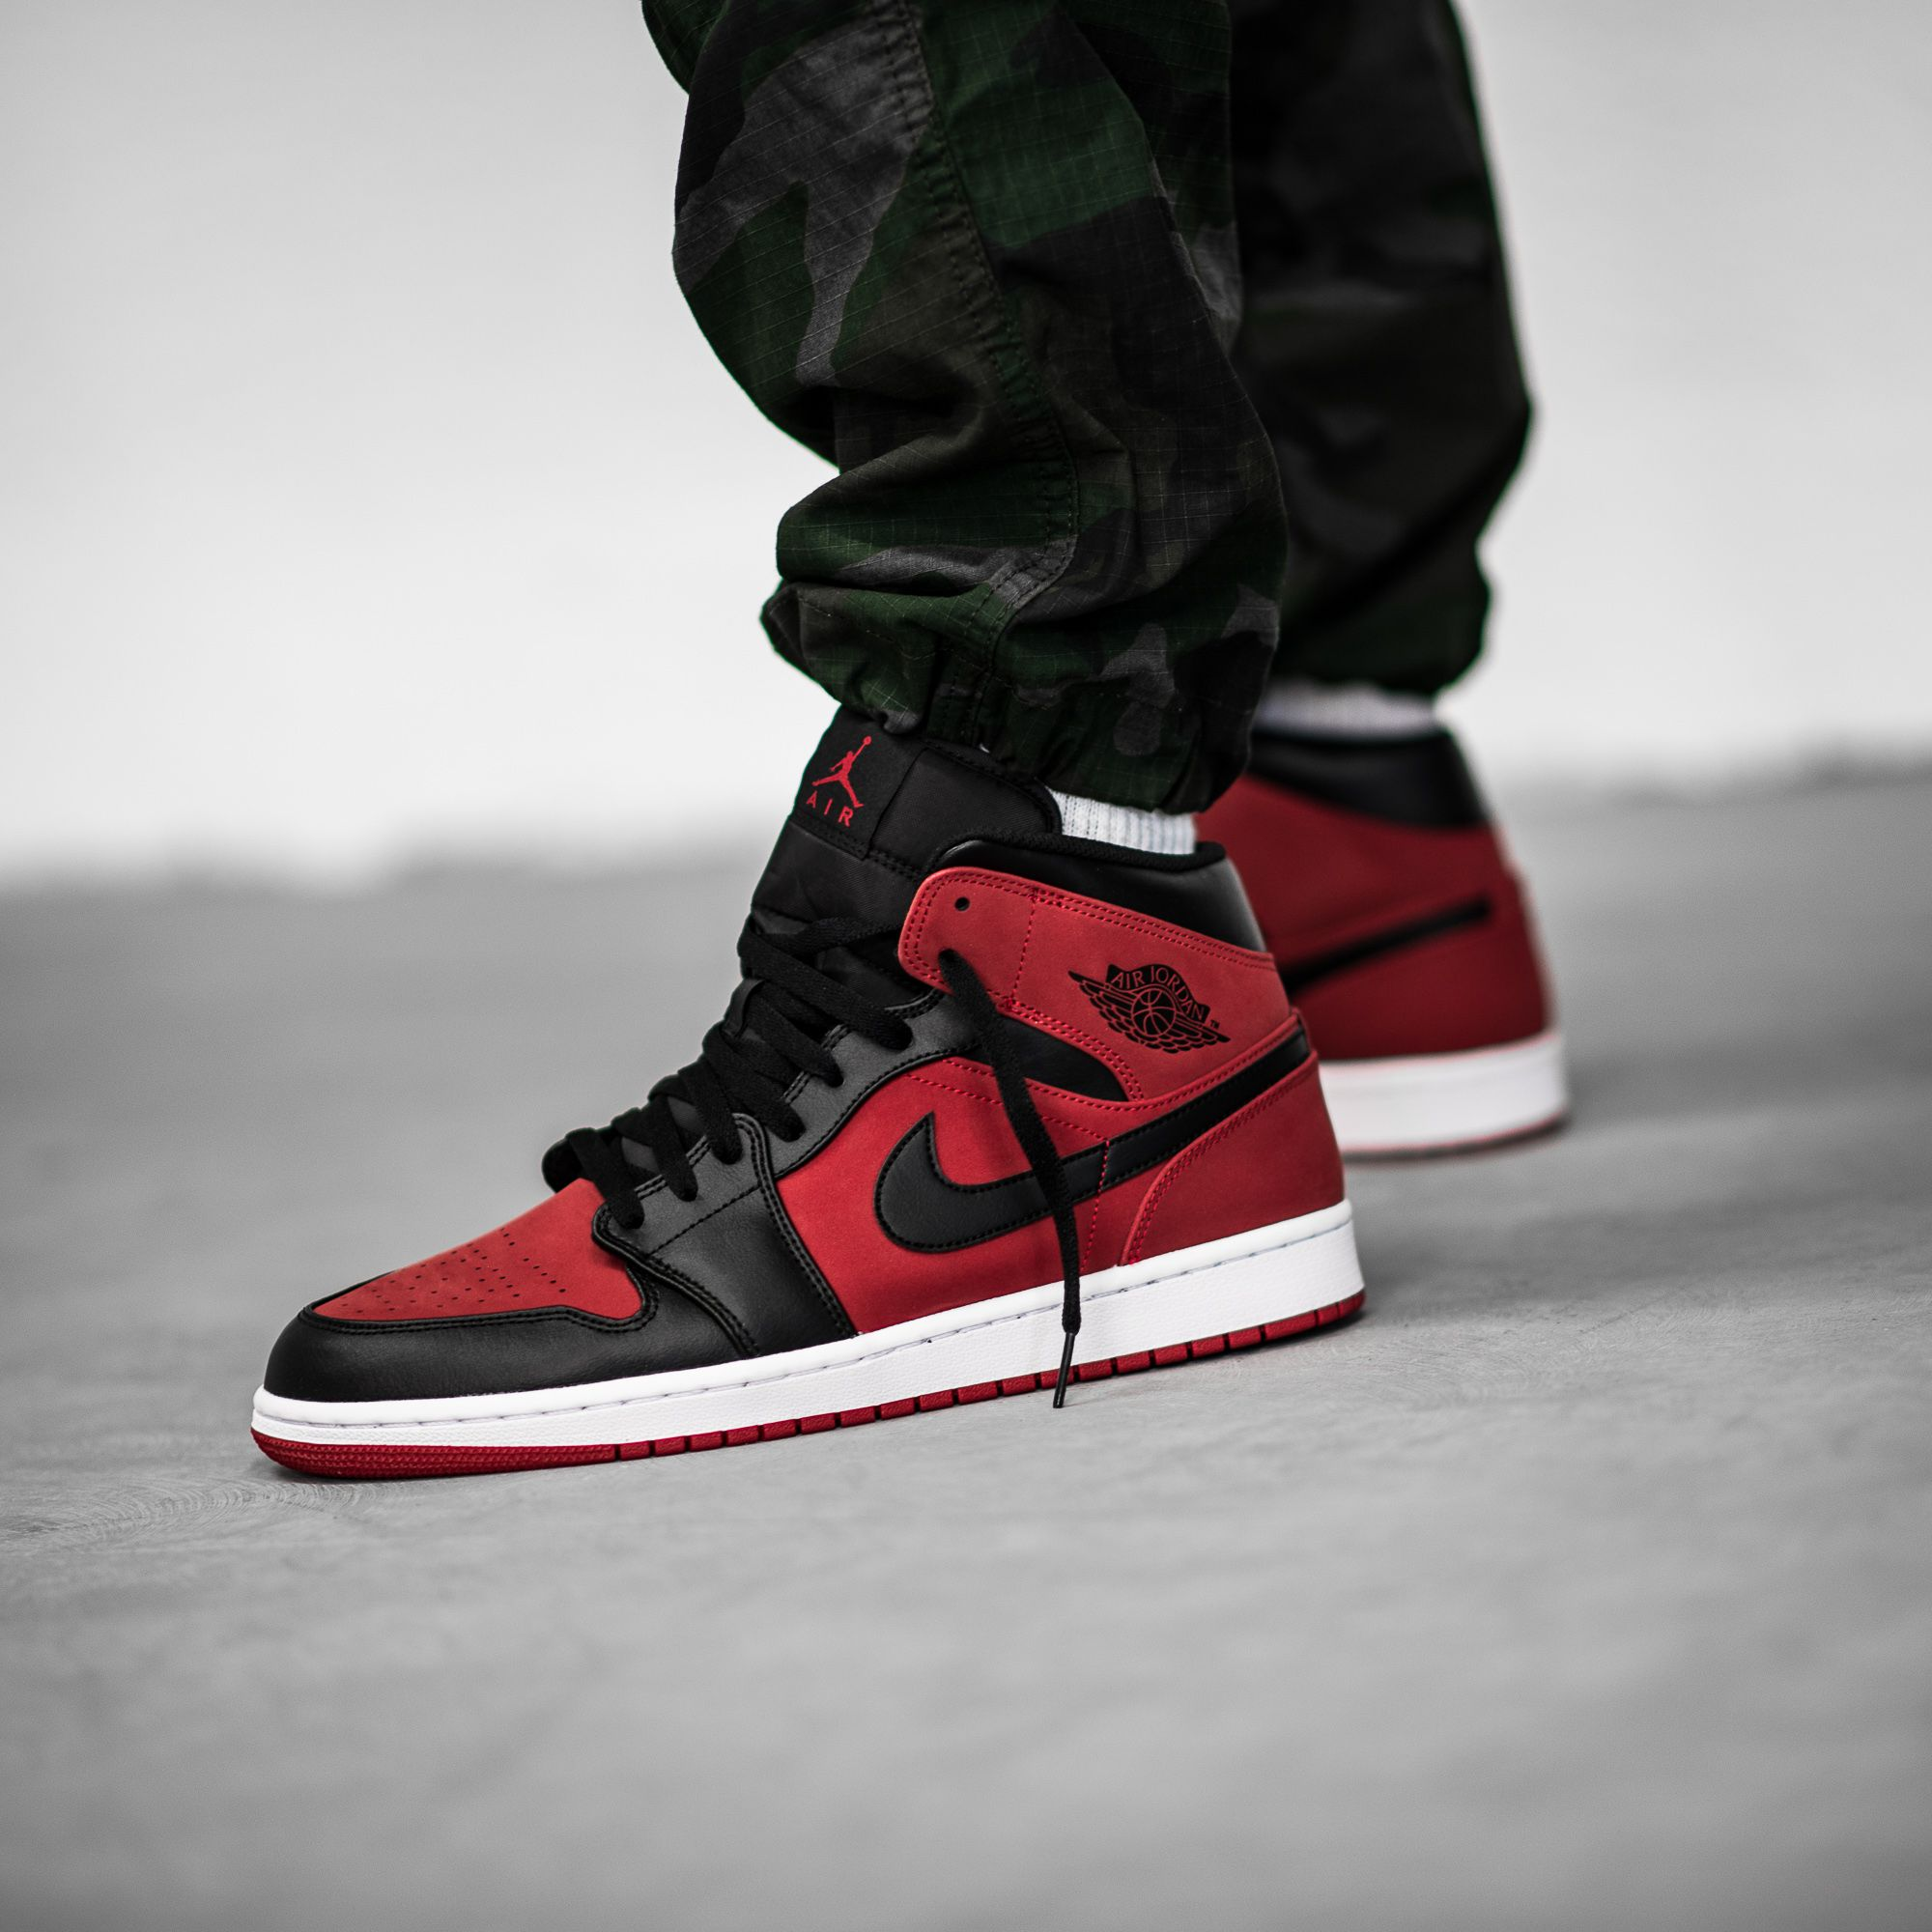 The Air Jordan 1 Mid In Gym Red Black White Is Now Available On